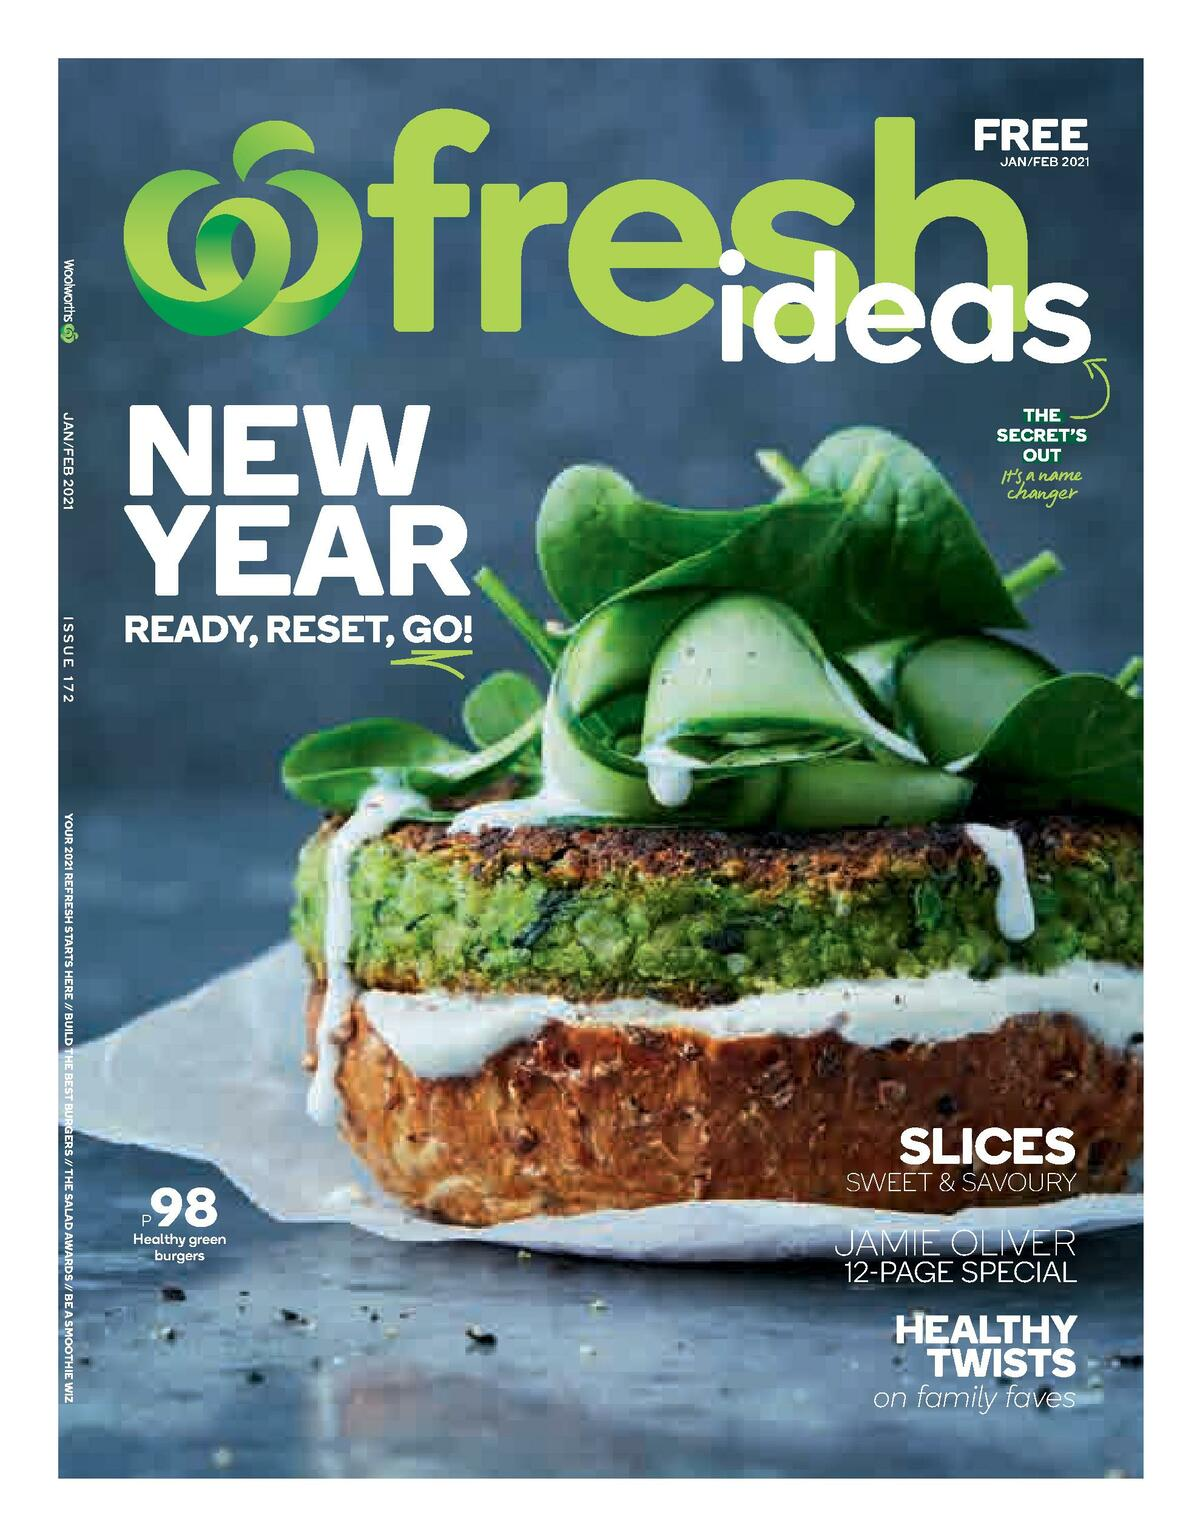 Woolworths Magazine January/February Catalogues from January 1